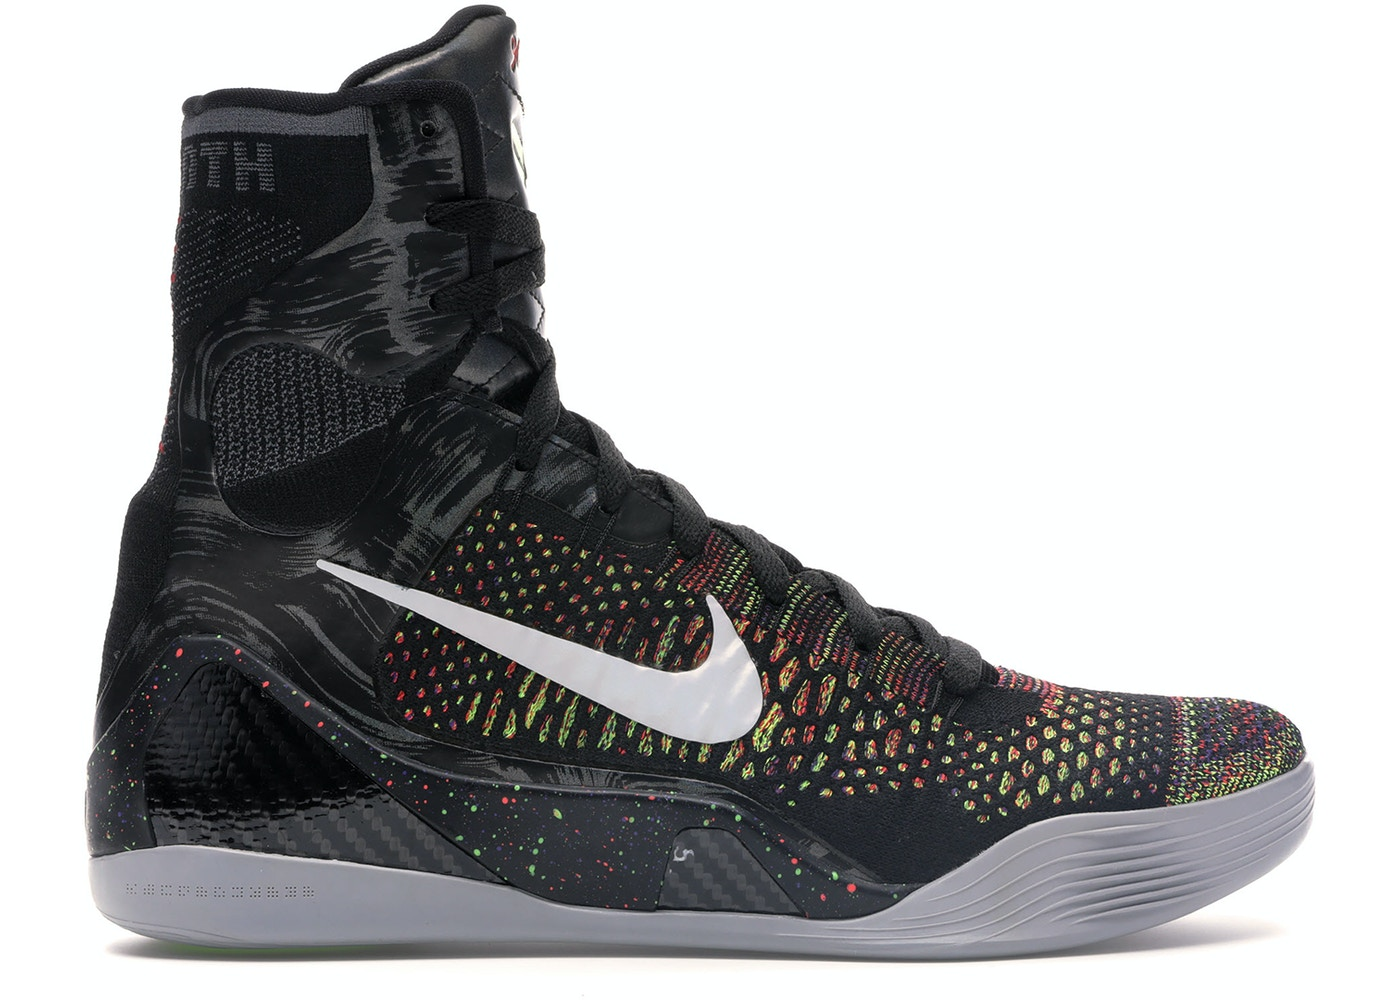 reputable site 09a71 23006 Nike Kobe 9 Shoes - Average Sale Price